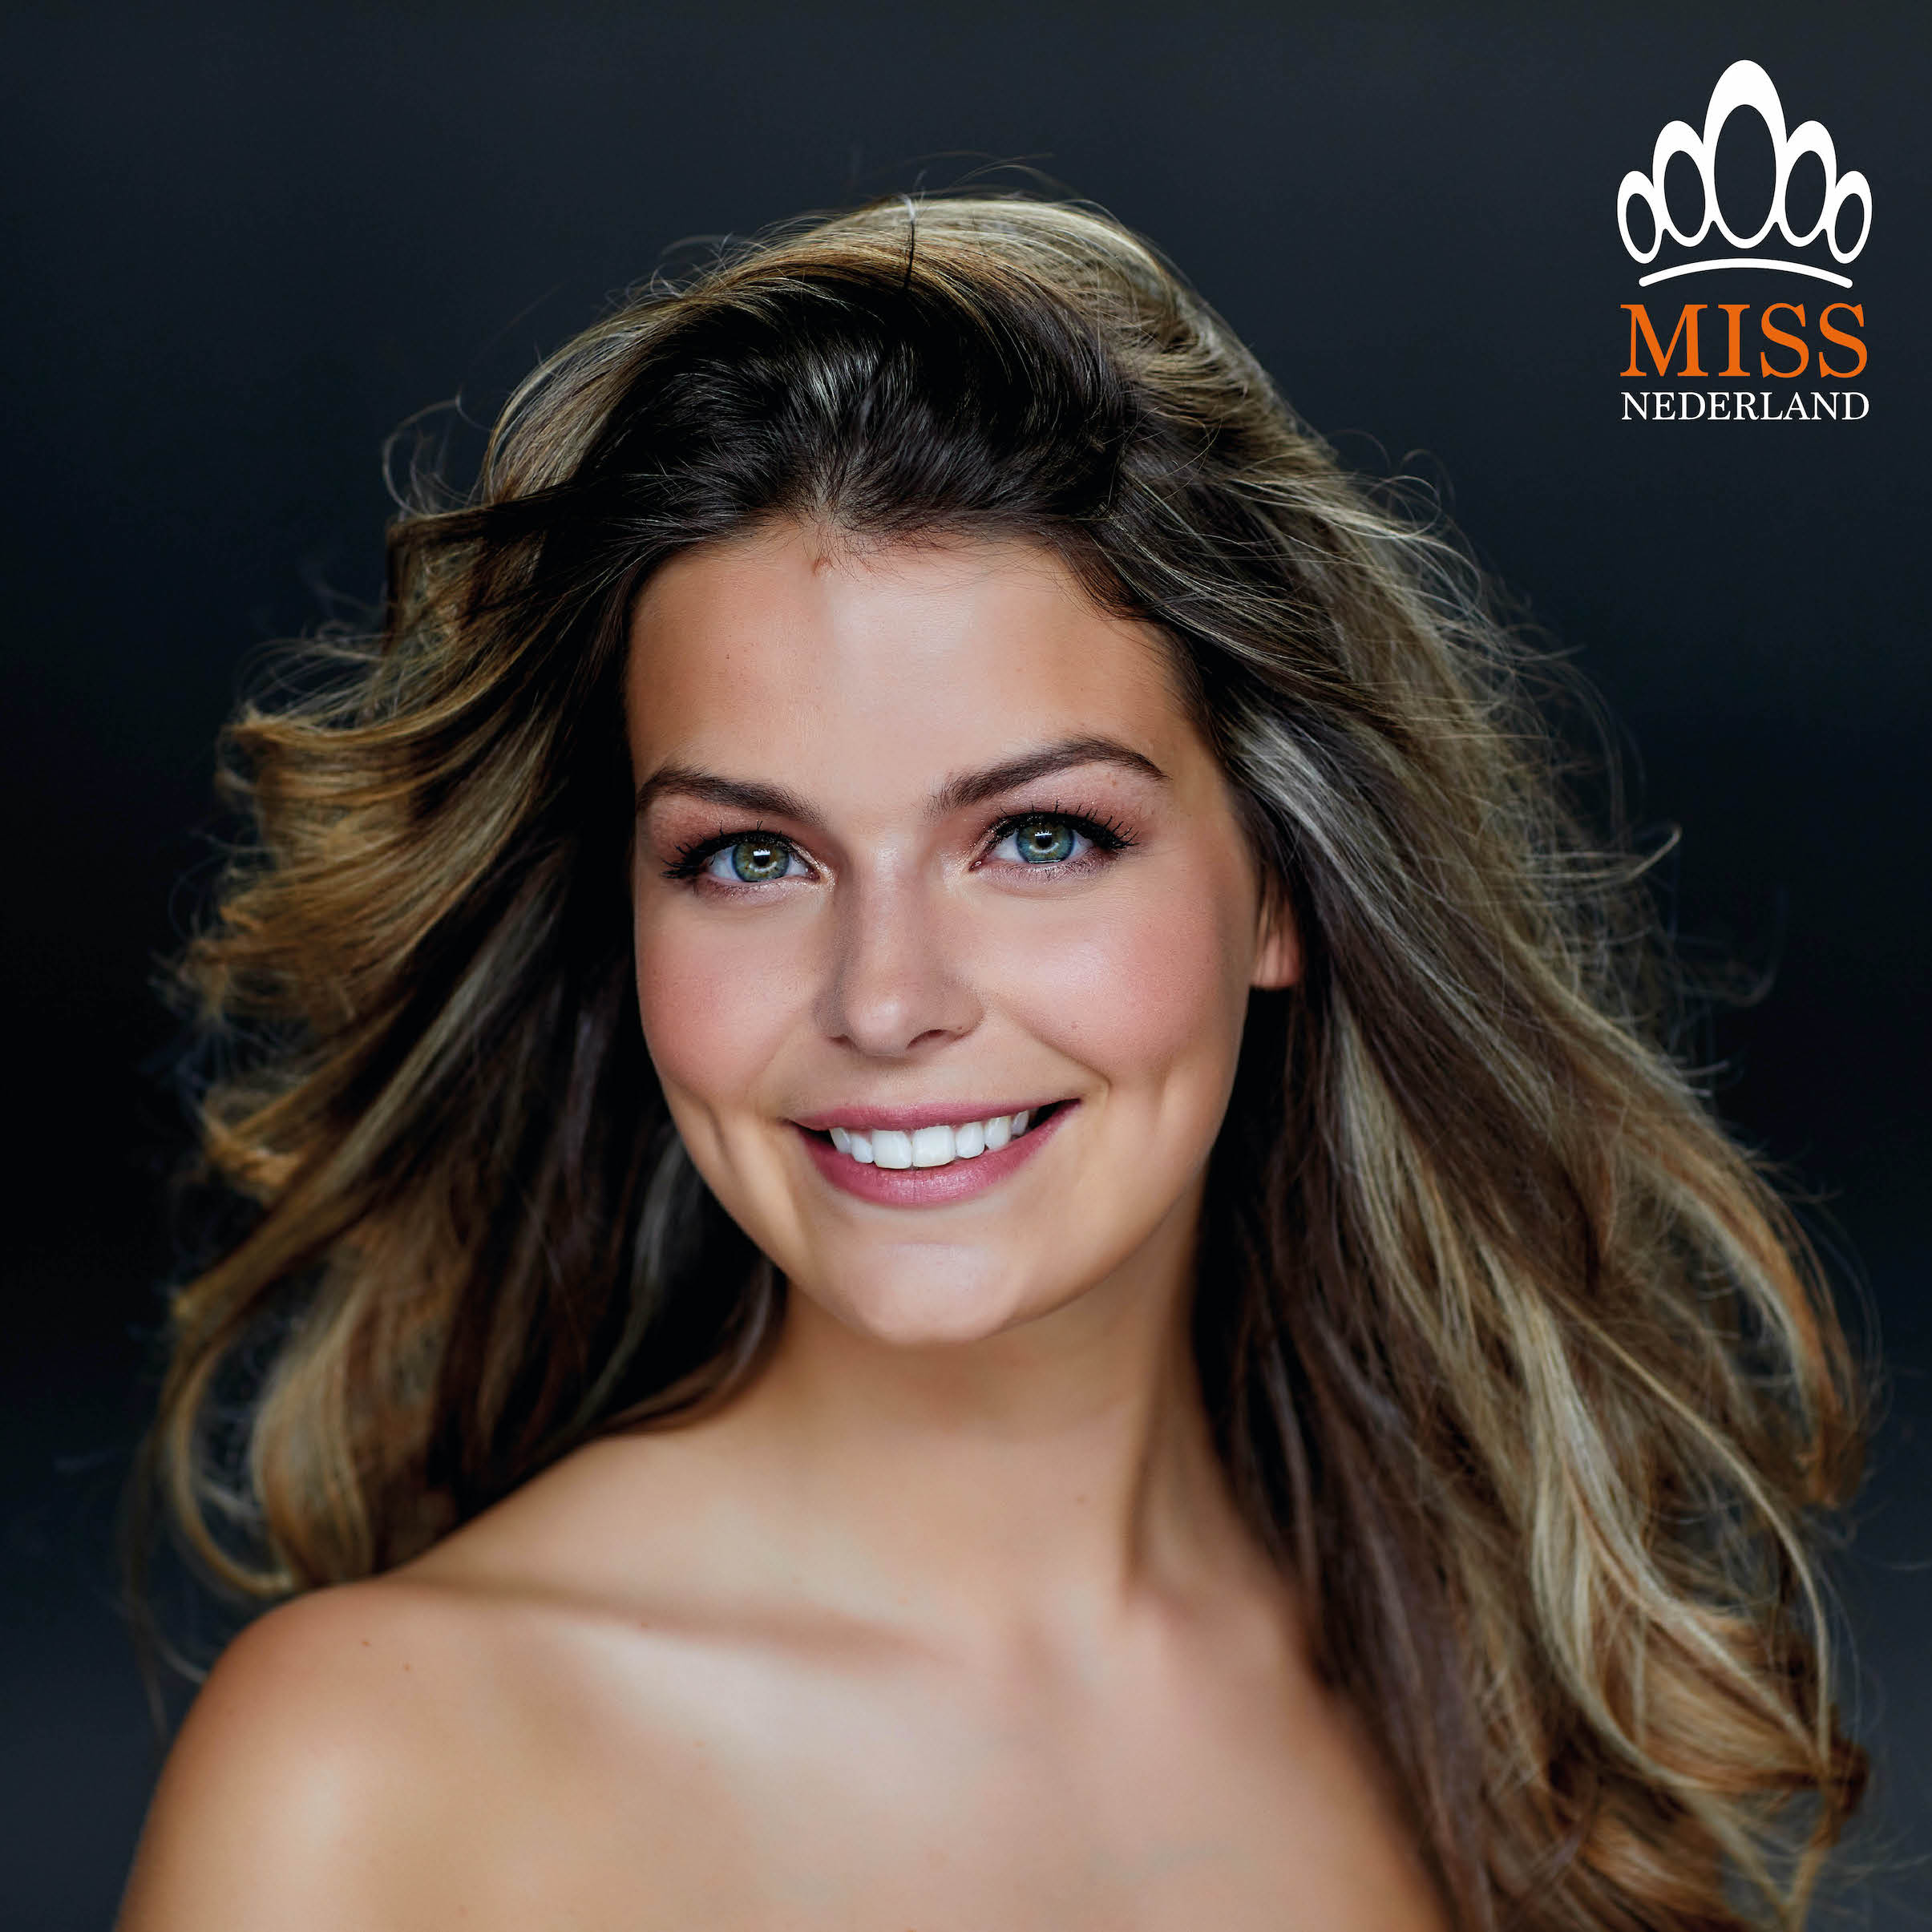 Miss Nederland finalist 2020_Sanne ten Kate